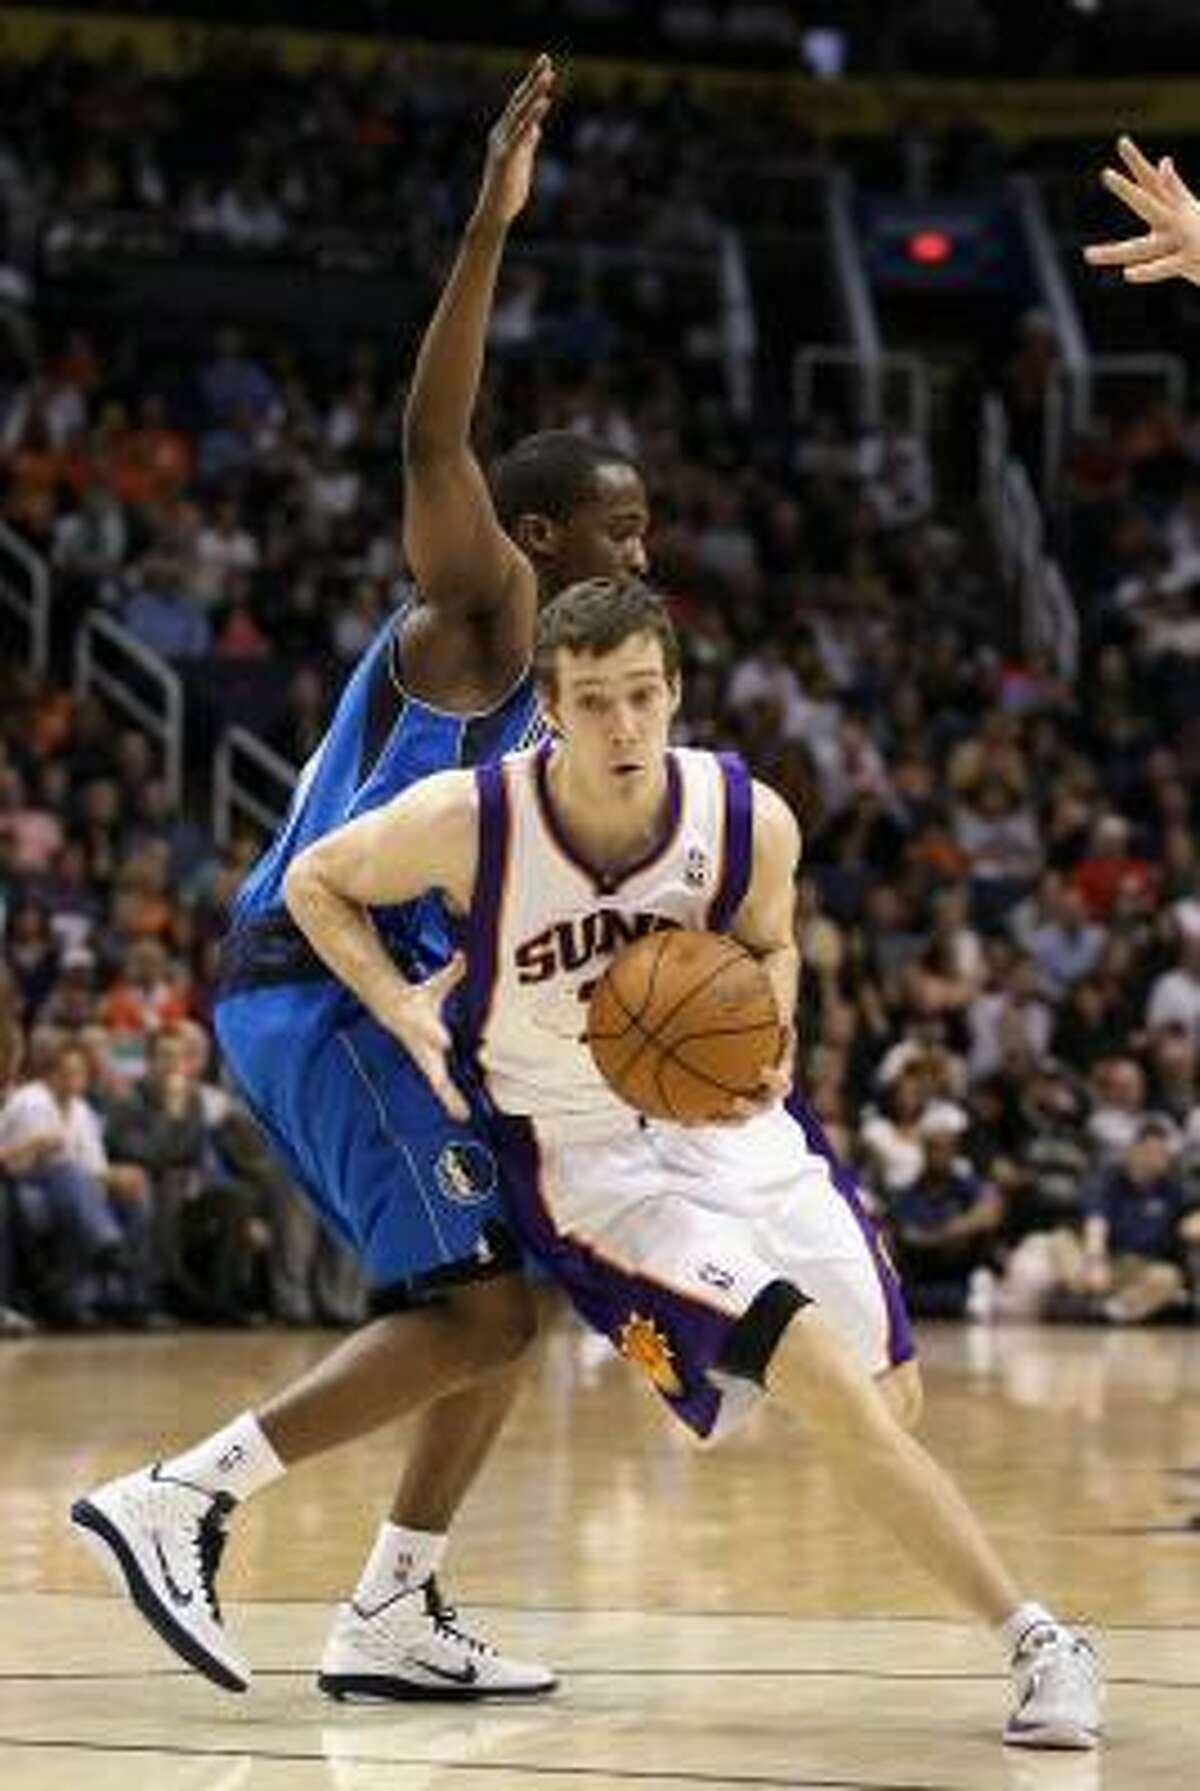 Goran Dragic, guard Dragic averaged 7.4 points and 3.1 assists in 48 games for the Suns this season.